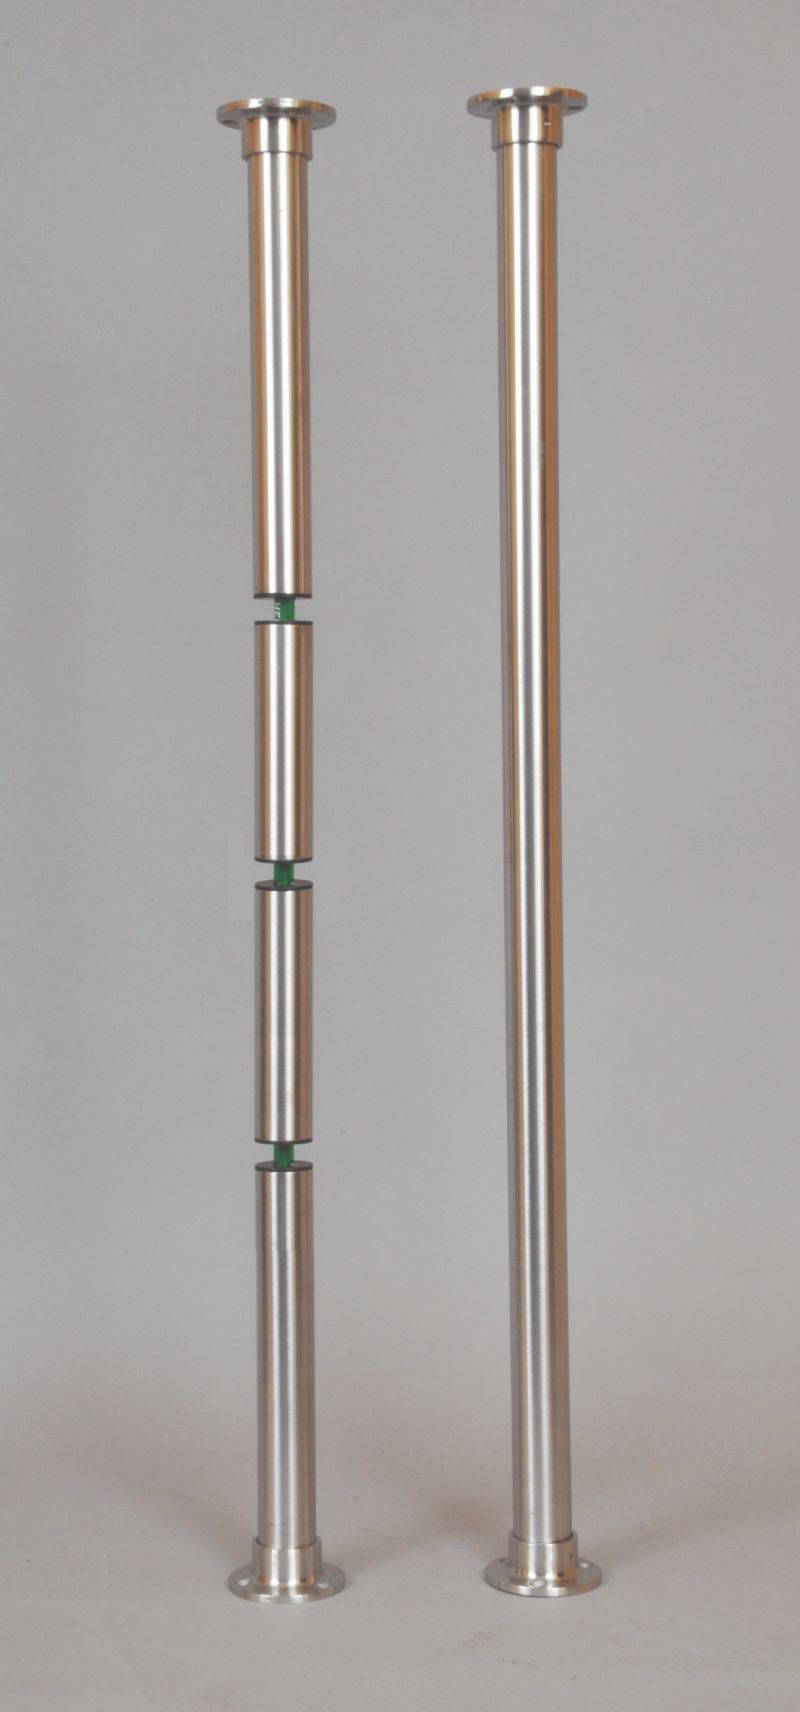 Stainless Steel Support Posts